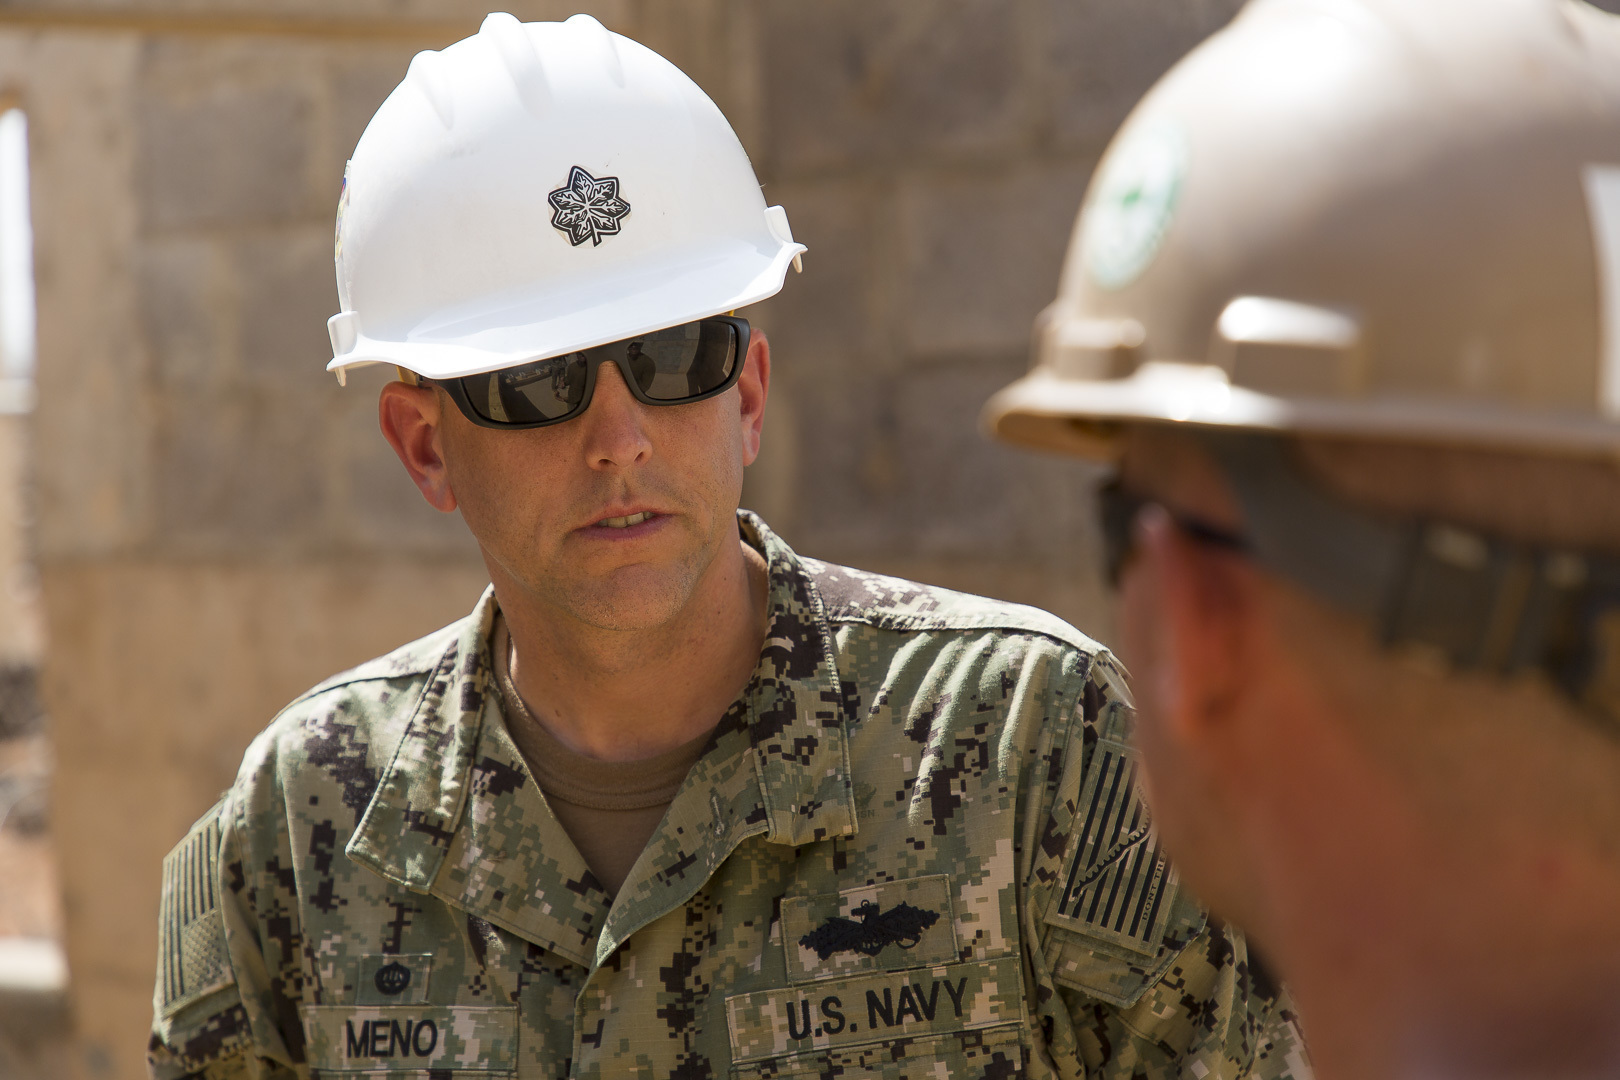 U.S. Navy Civil Engineer Corps Cmdr. Michael Meno, Naval Mobile Construction Battalion 1 commander, receives a construction site briefing from Builder 2nd Class Erik Rau in Ali Oune, Djibouti, Sept.19, 2018. Seabees with NMCB 1 Detachment Horn of Africa are building a medical facility in Ali Oune in support of the Ministry of Health for Djibouti. (U.S. Air National Guard photo by Master Sgt. Andrew Sinclair)